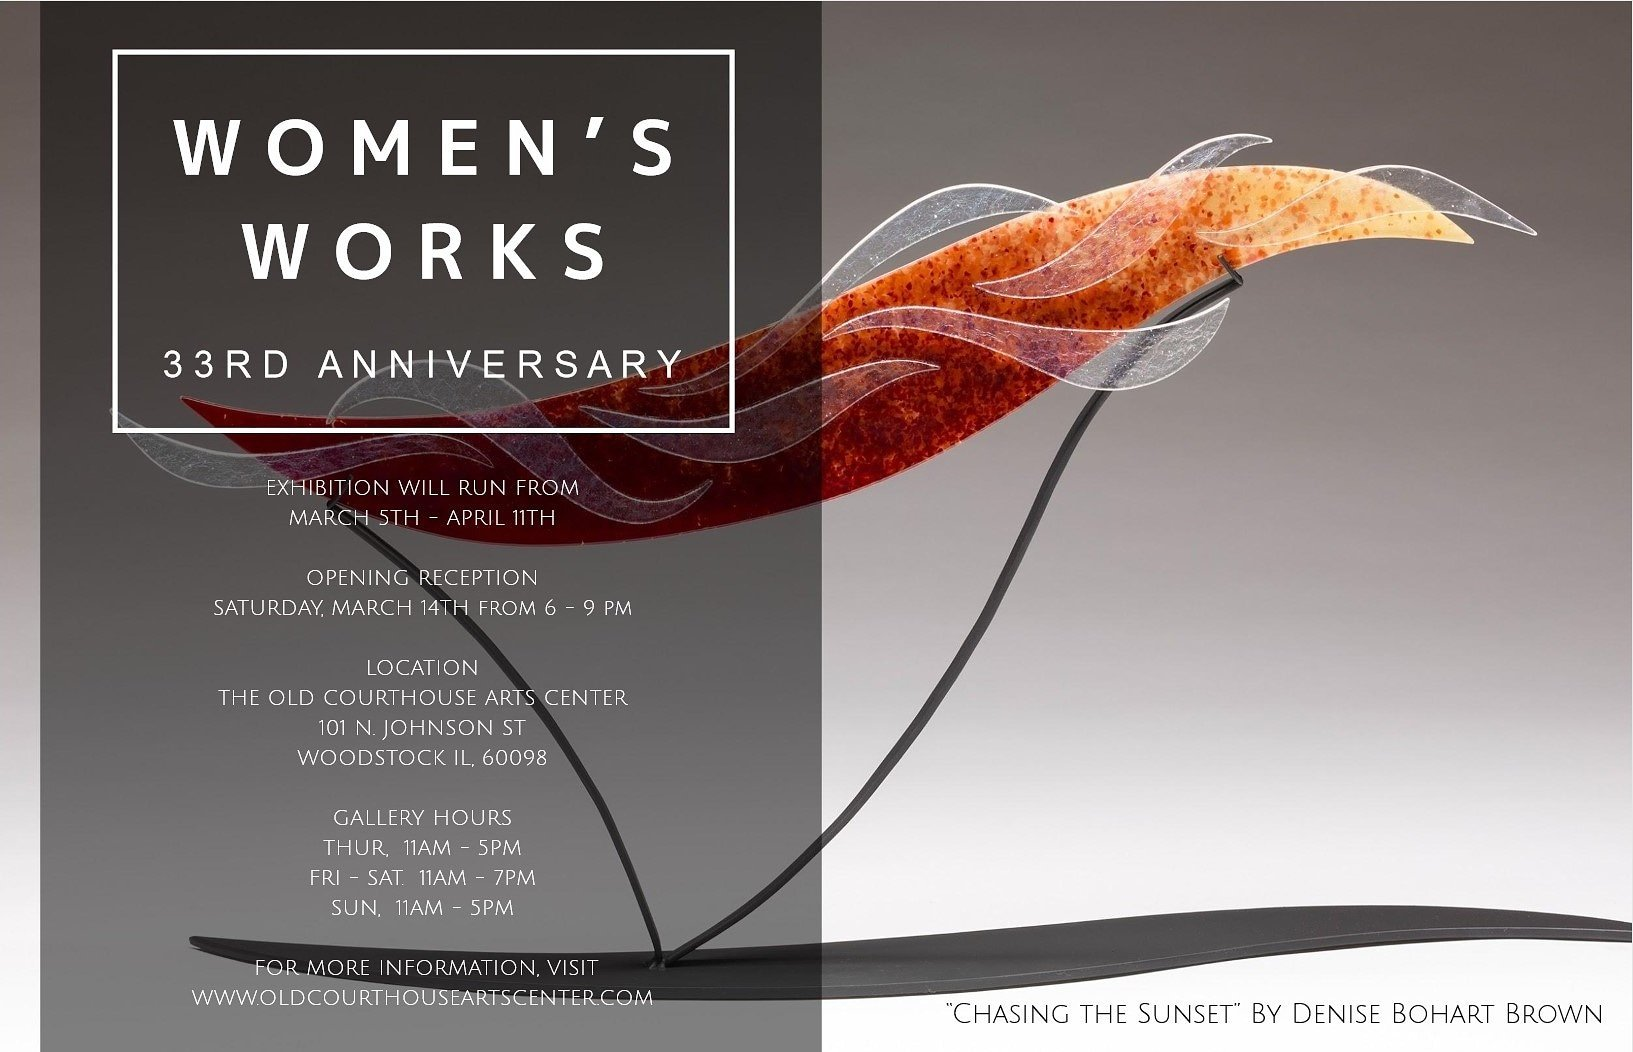 Women's Works Show 33rd anniversary at the Old Court House in Woodstock, IL